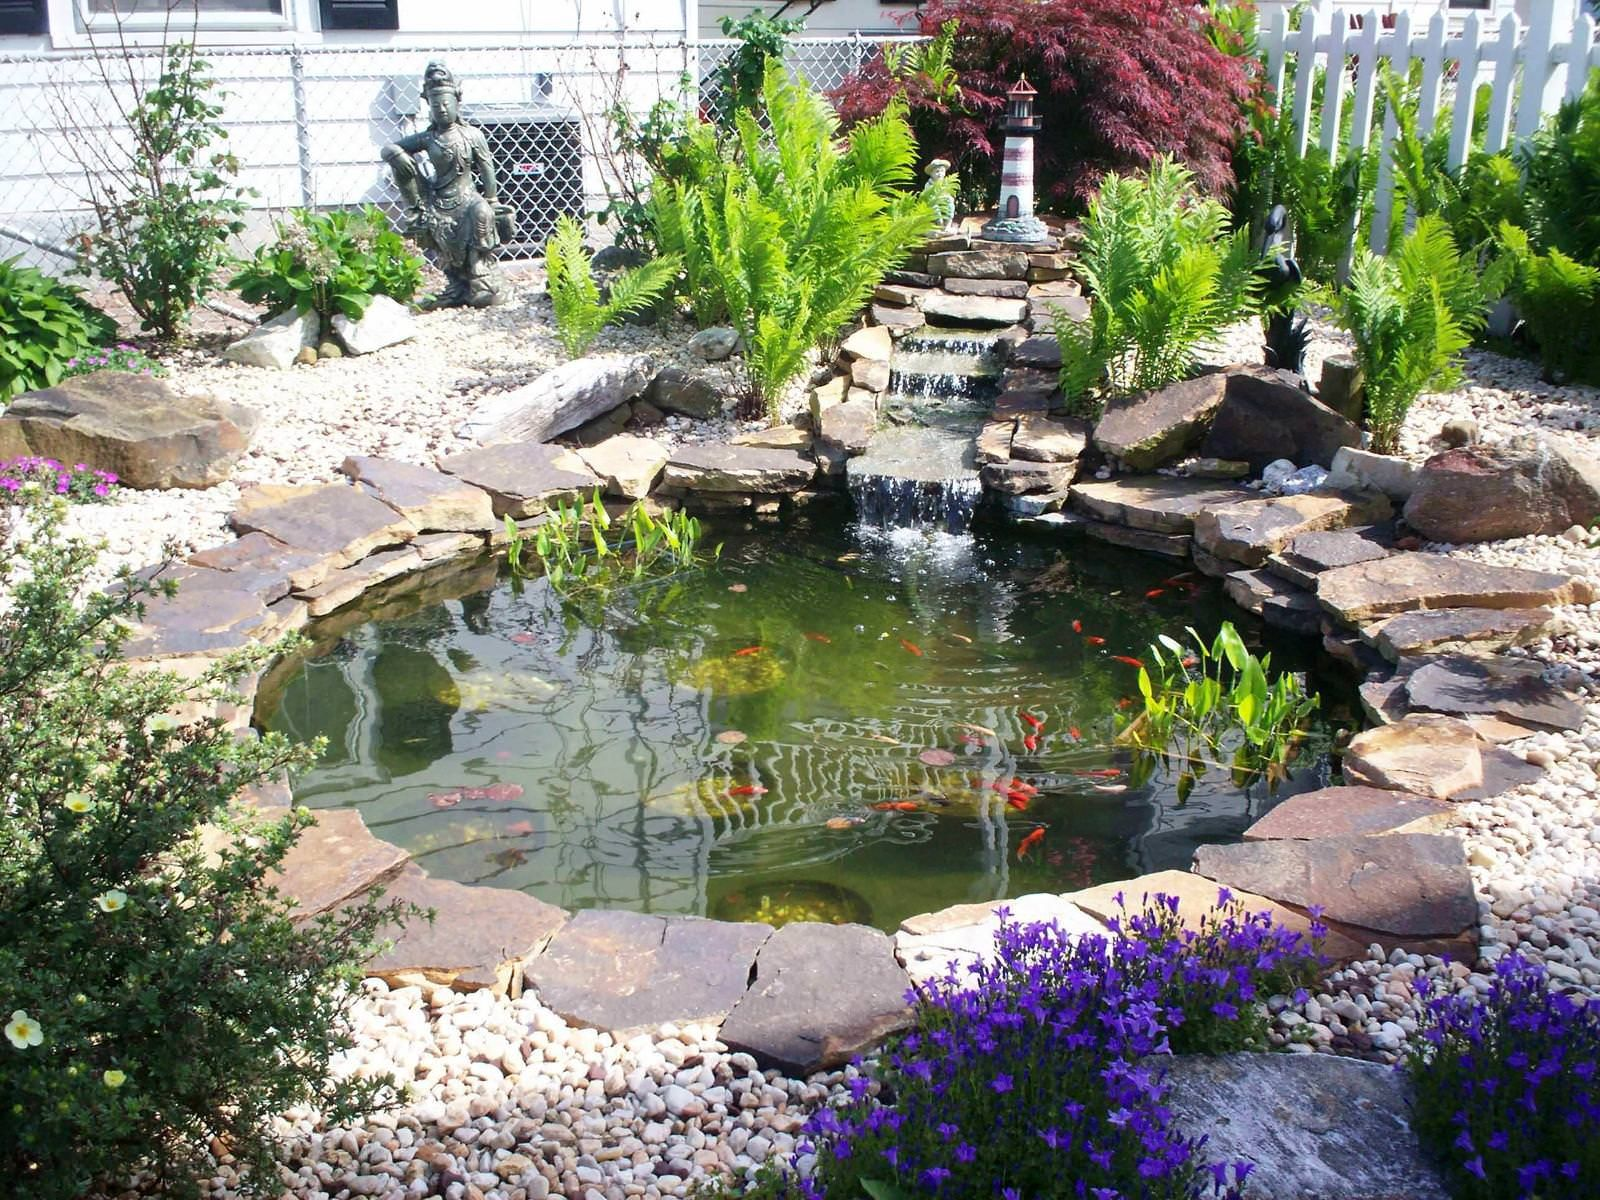 Small garden or backyard aquarium ideas practic ideas for Small yard ponds